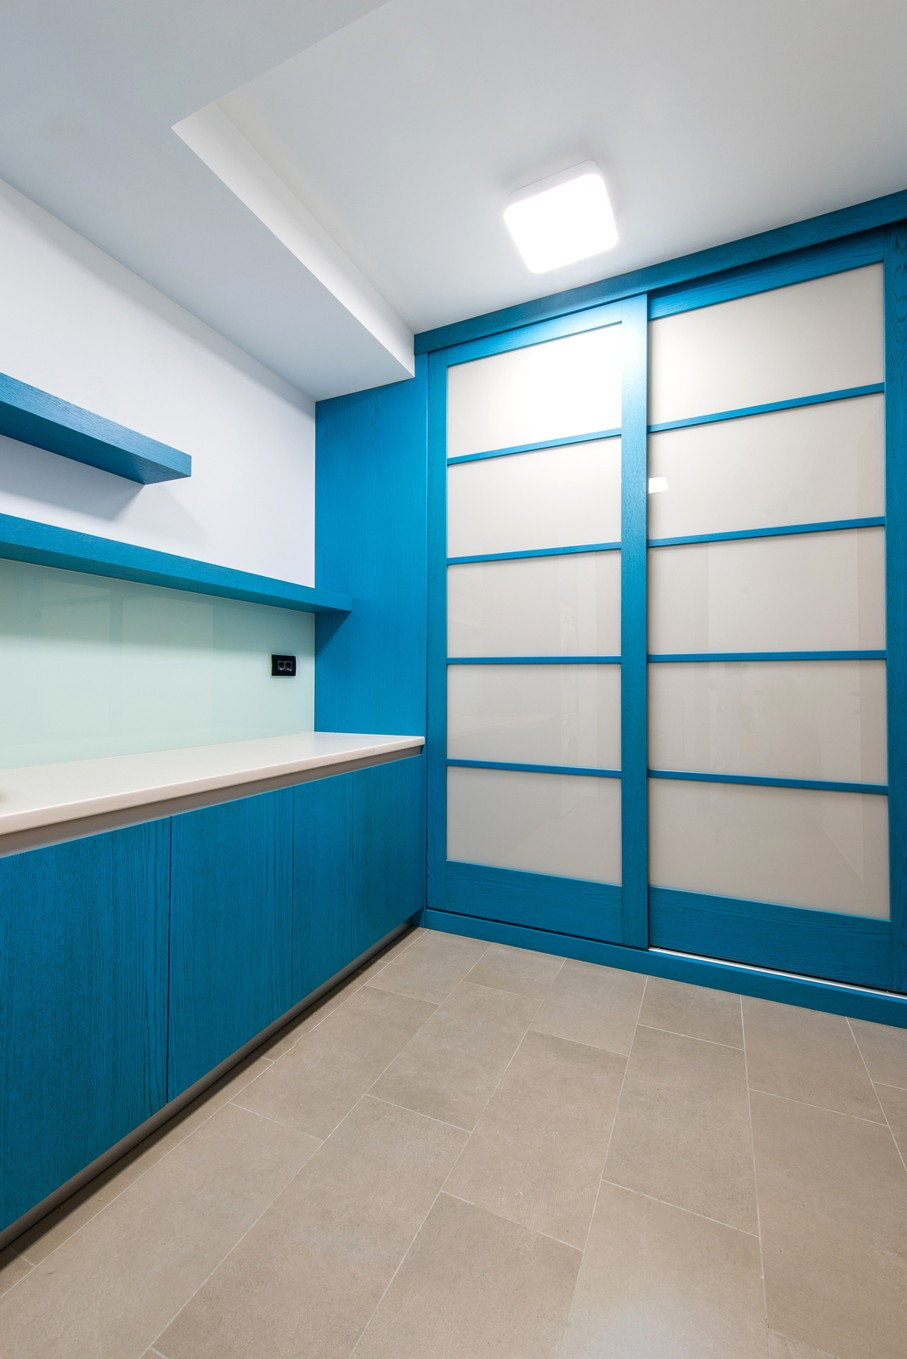 Empty laundry room with closet and shelves in modern home interor